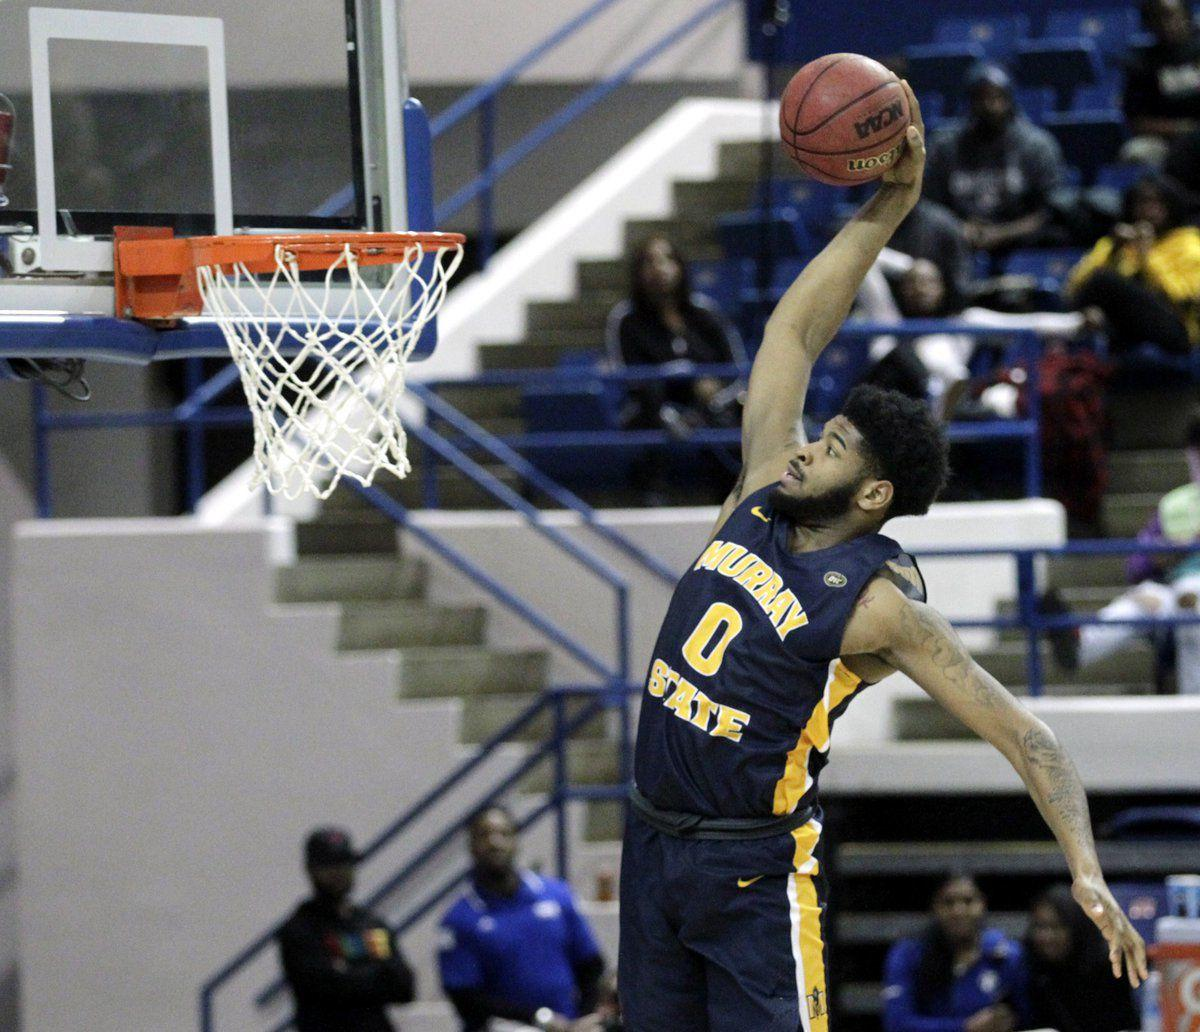 Racers take first place with gritty win over TSU